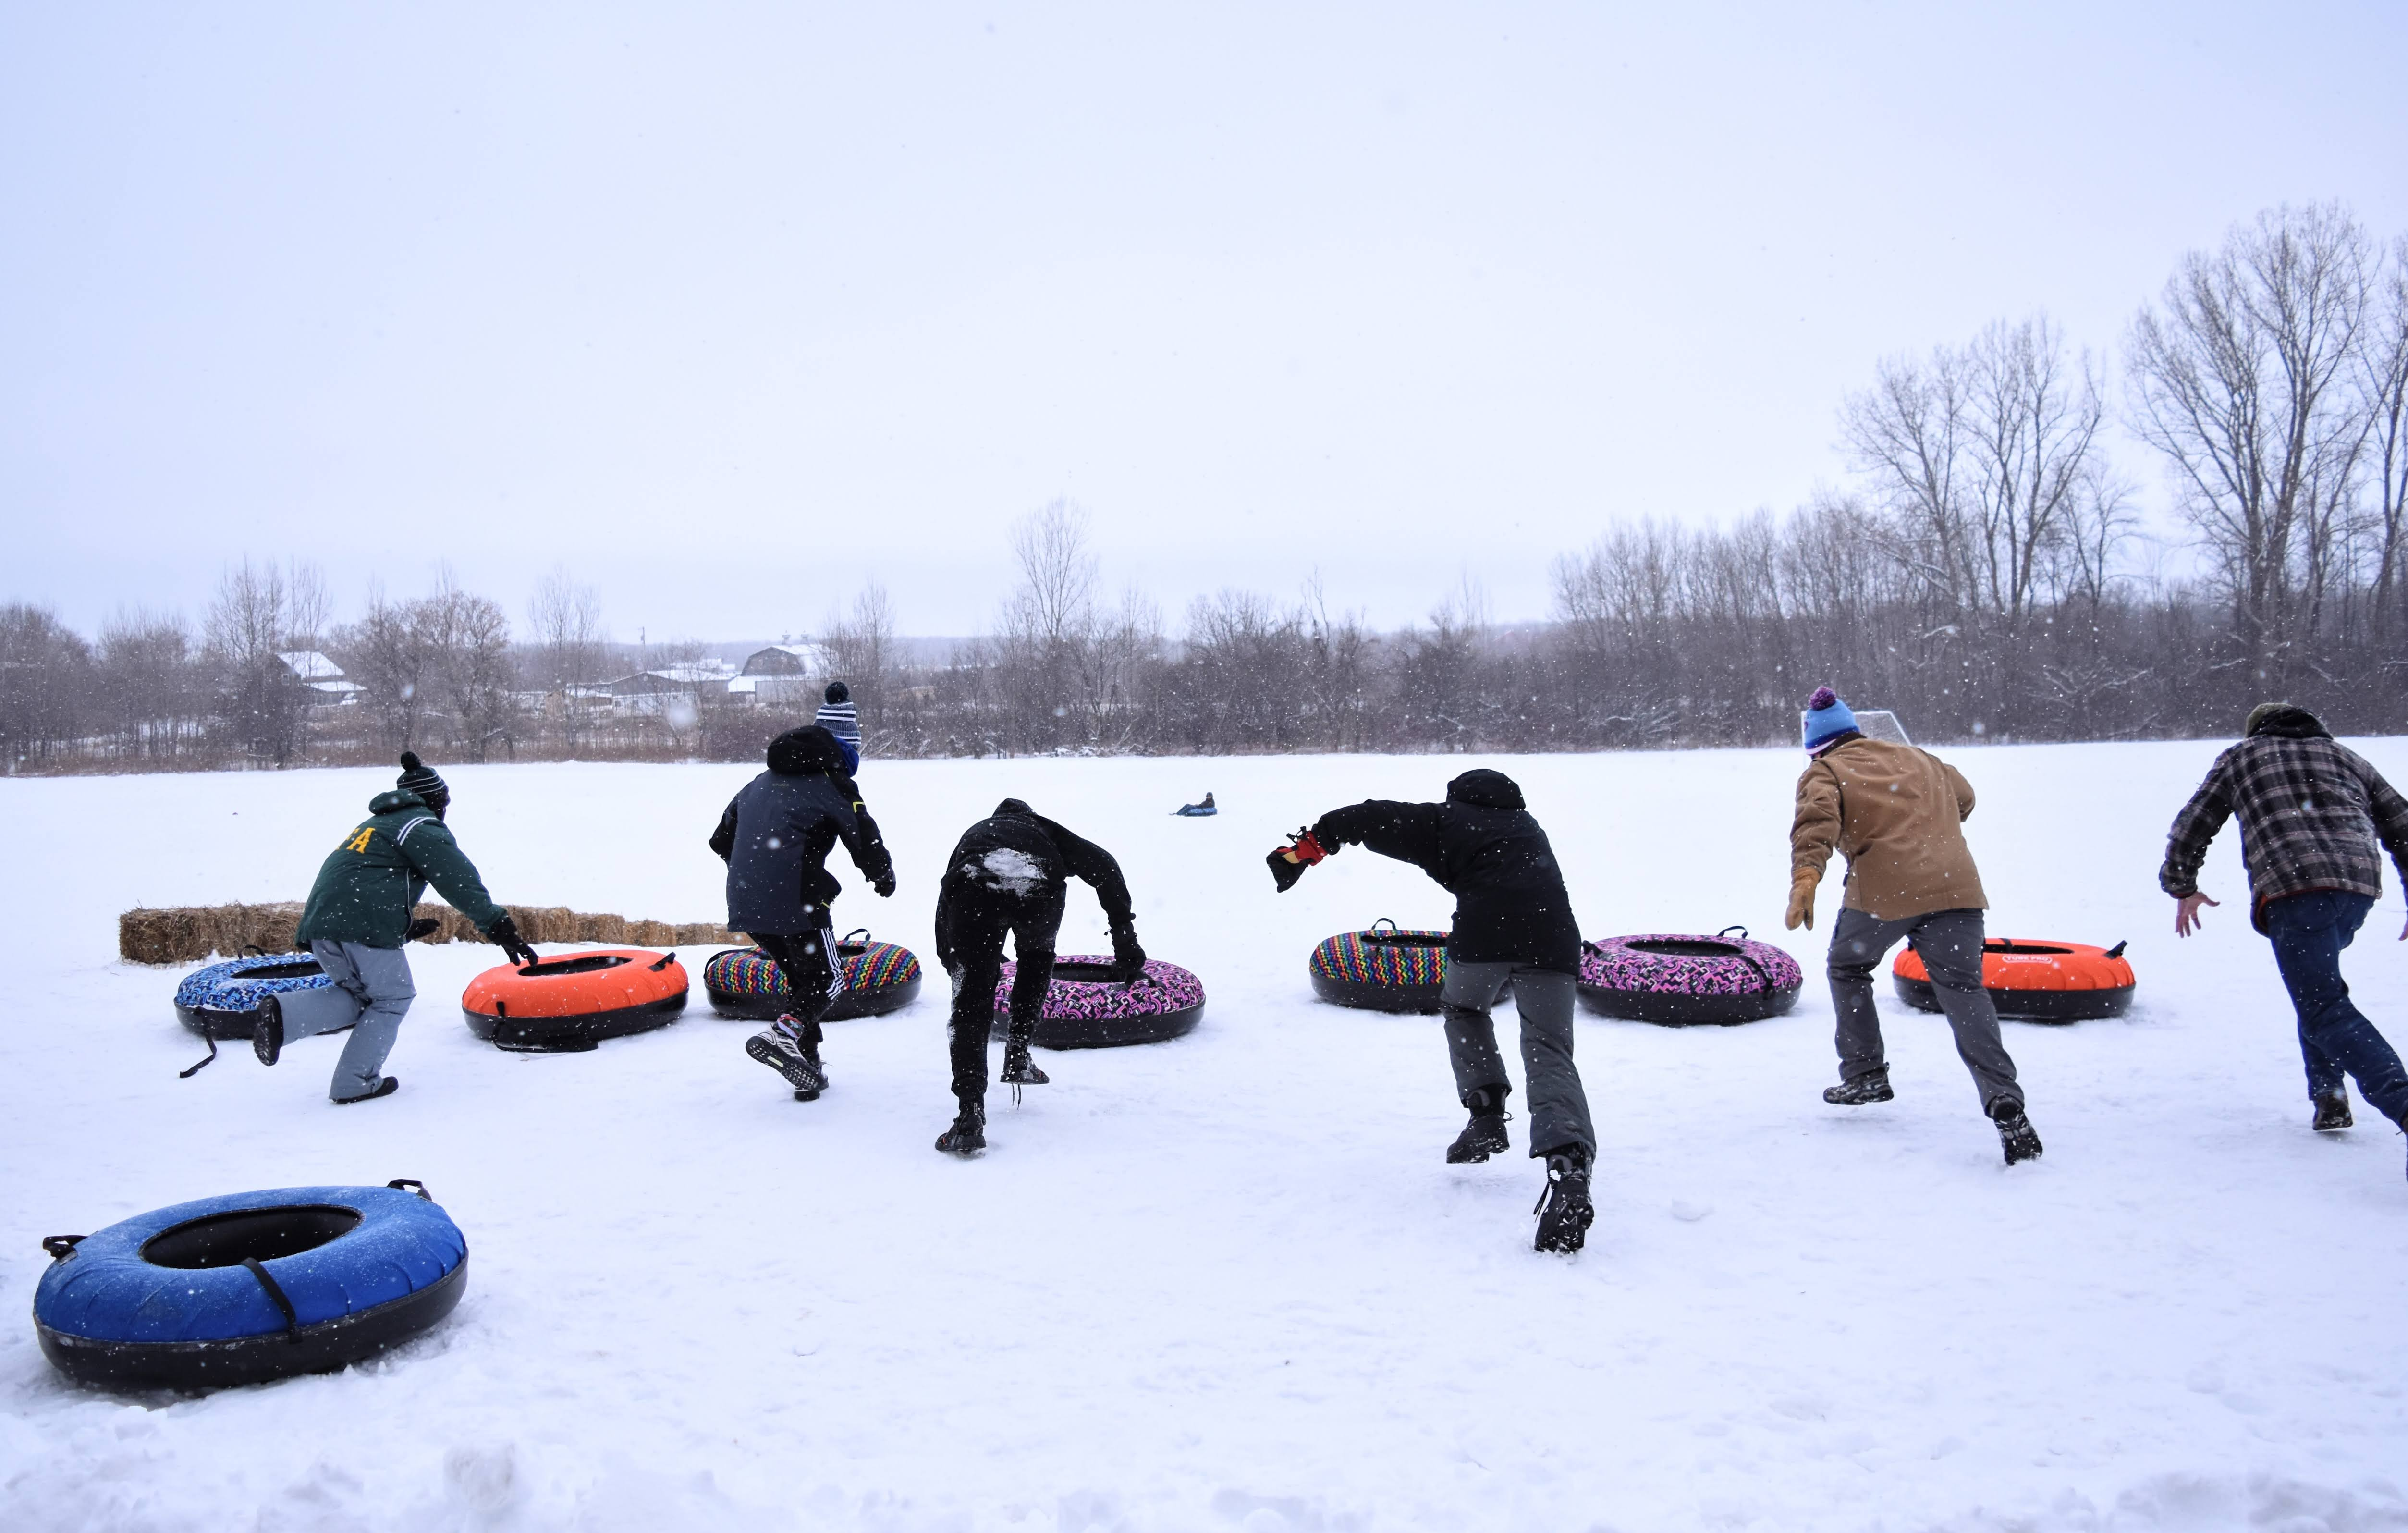 Jumping onto snow tubes